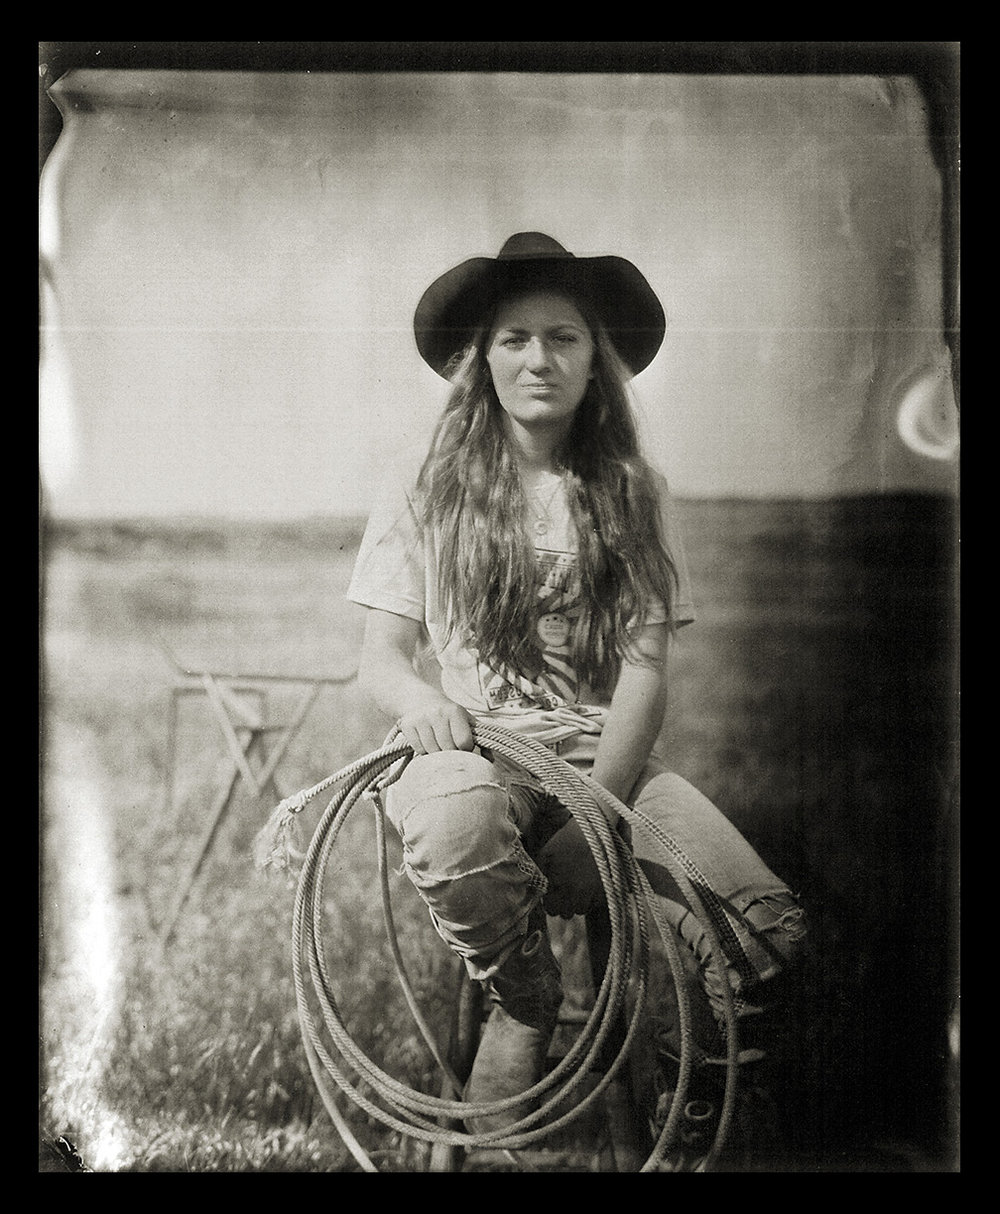 Jaden Stauffer    Wet Plate Tin Type on Aluminum   Jaden Stauffer is the youngest family member still living and working on the Zerbst Ranch in Niobrara County Wyoming, just outside of the Black Hills. Jaden is a 5th generation rancher, fossil collector and an avid photographer. The ranch she calls home has produced some of the world's most incredible fossils of Tyrannosaurus rex, Edmontosaurus, and Triceratops.Since their discovery in the early 1900's, the much celebrated 'mummified' dinosaurs from this ranch have been important elements on exhibit in New York and Seckenberg, Germany. She is photographed here on her ranch with her lariat and roping steer.